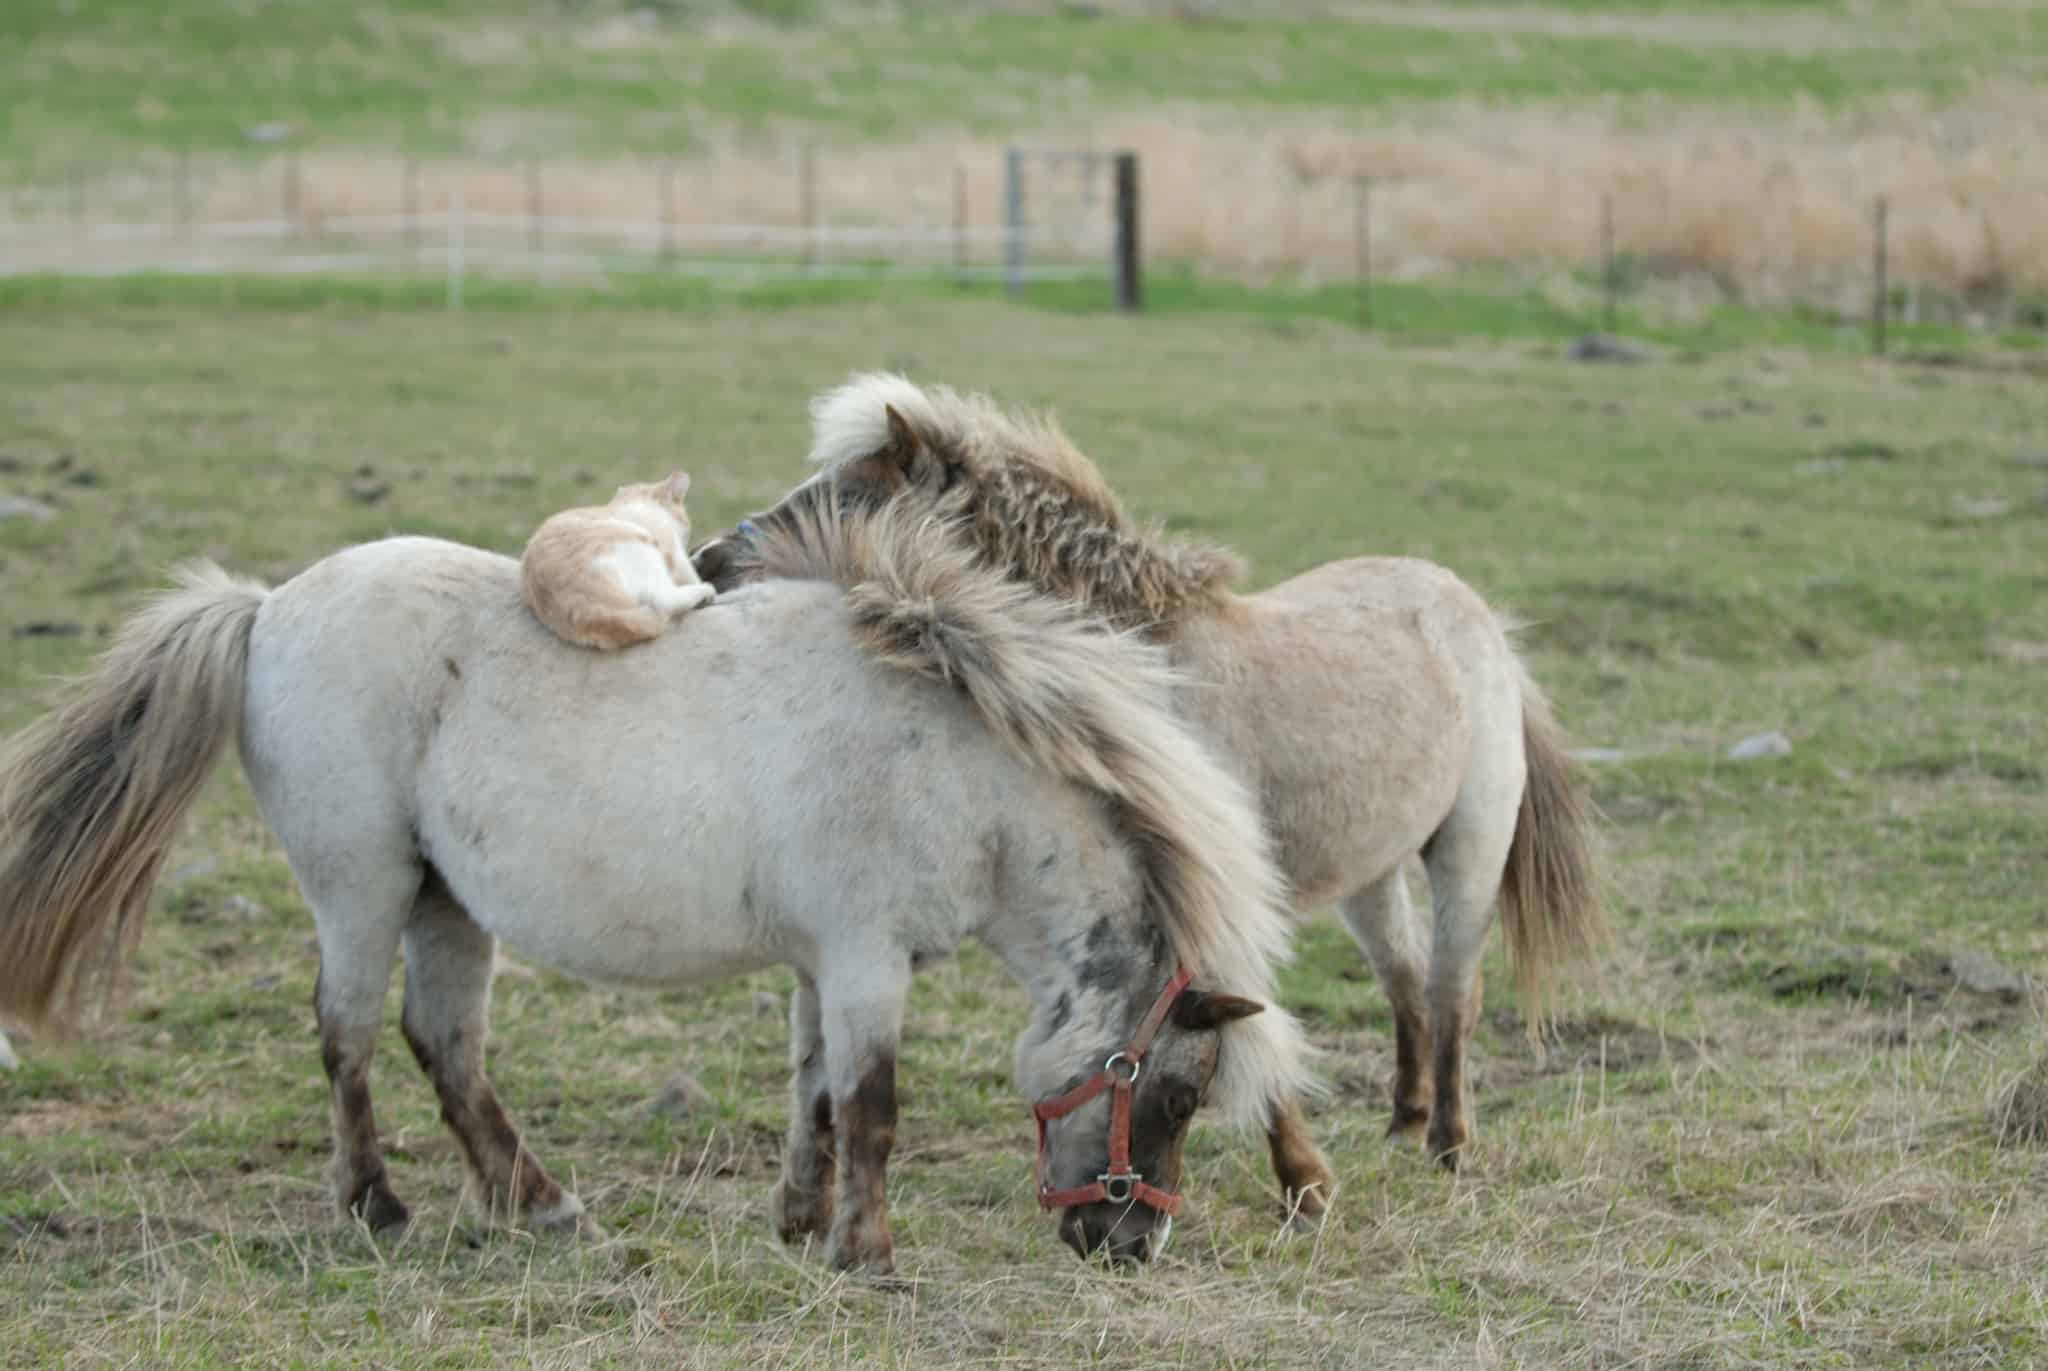 two mini horses with a cat